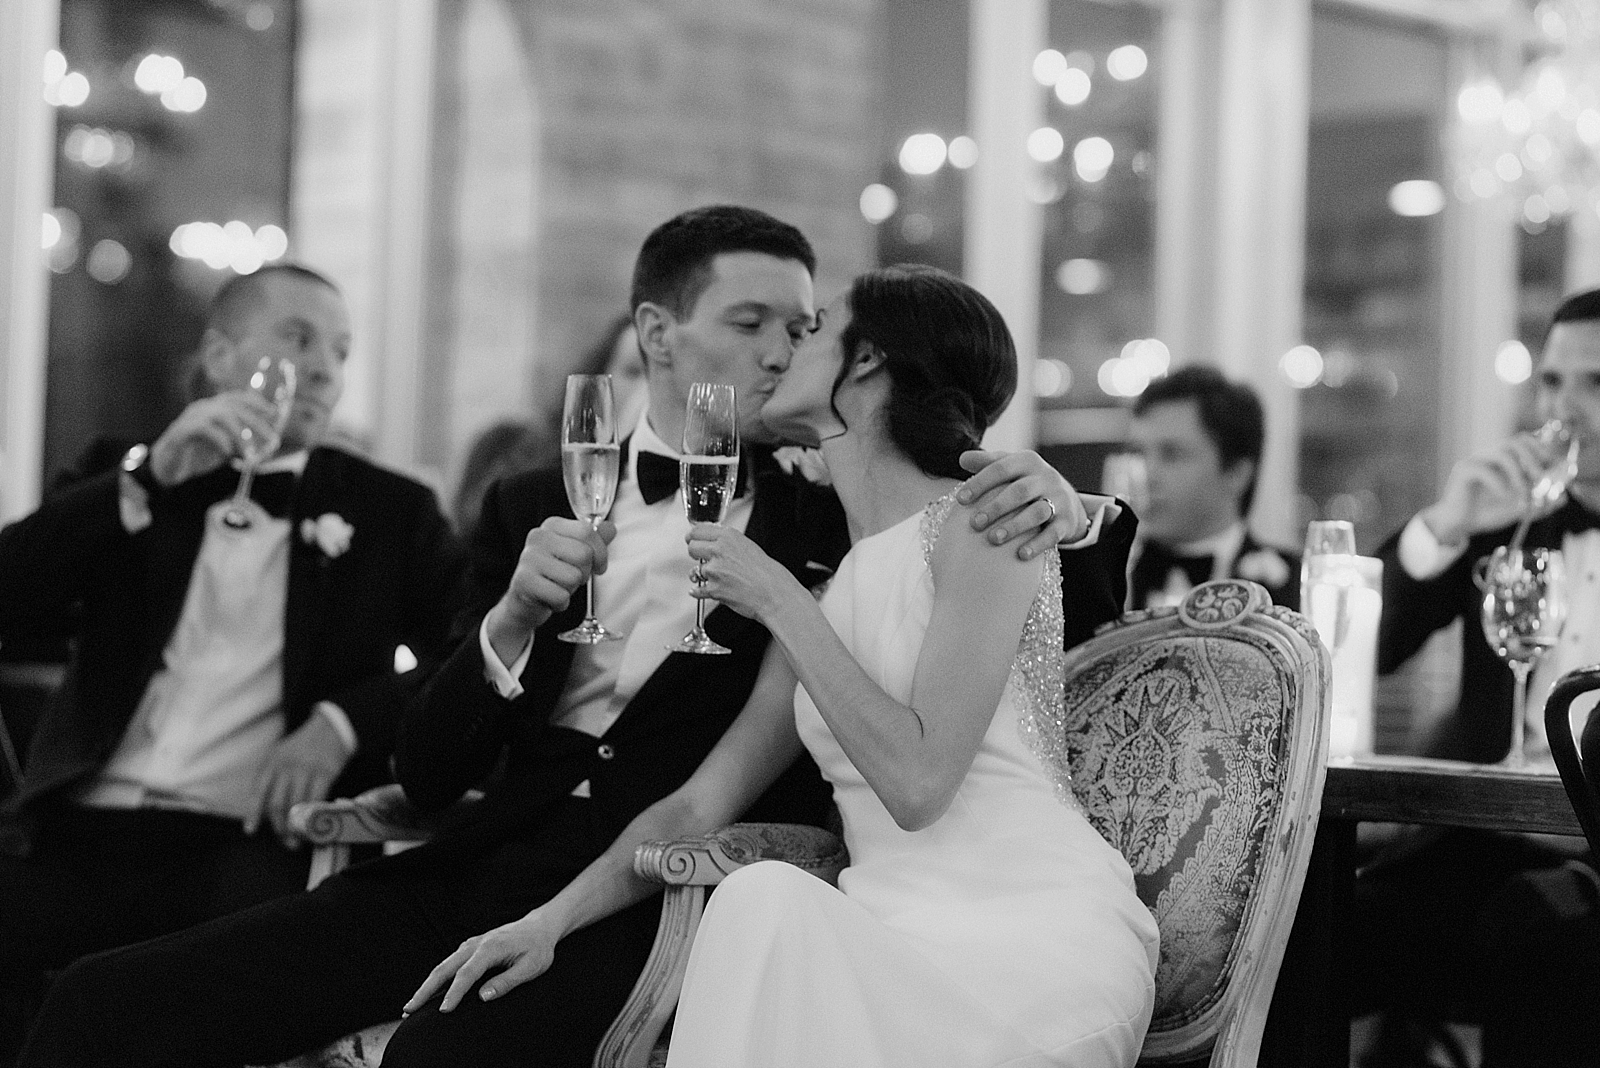 Romantic kiss during a wedding toast at a candlelit reception